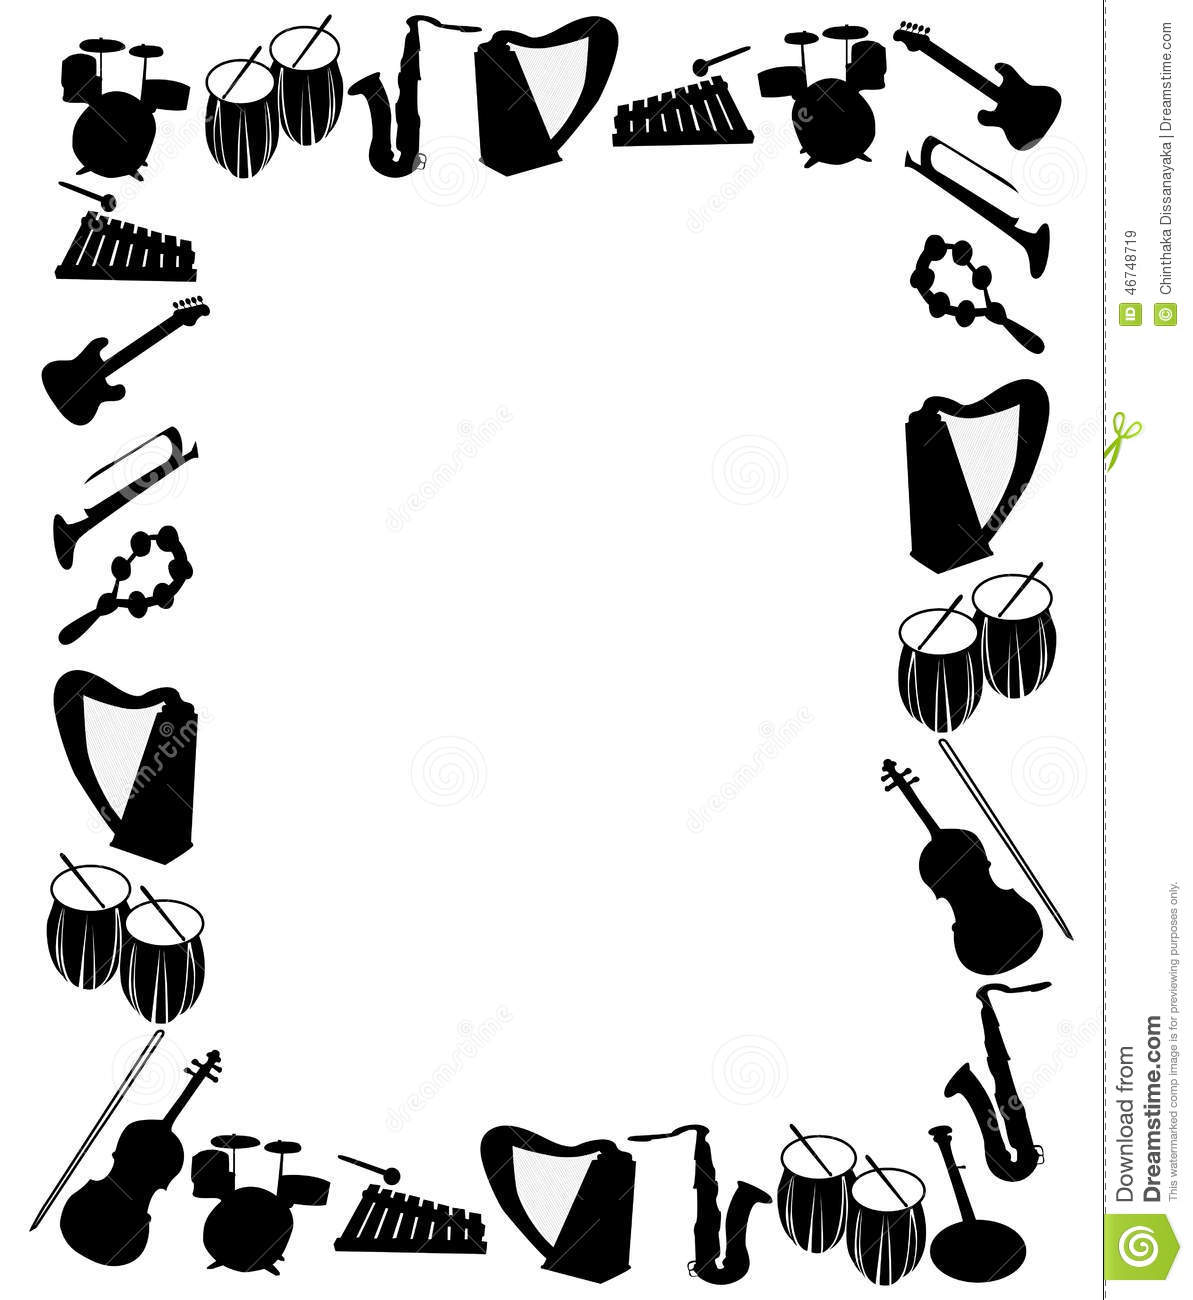 orchestra border clipart clipart suggest. Black Bedroom Furniture Sets. Home Design Ideas